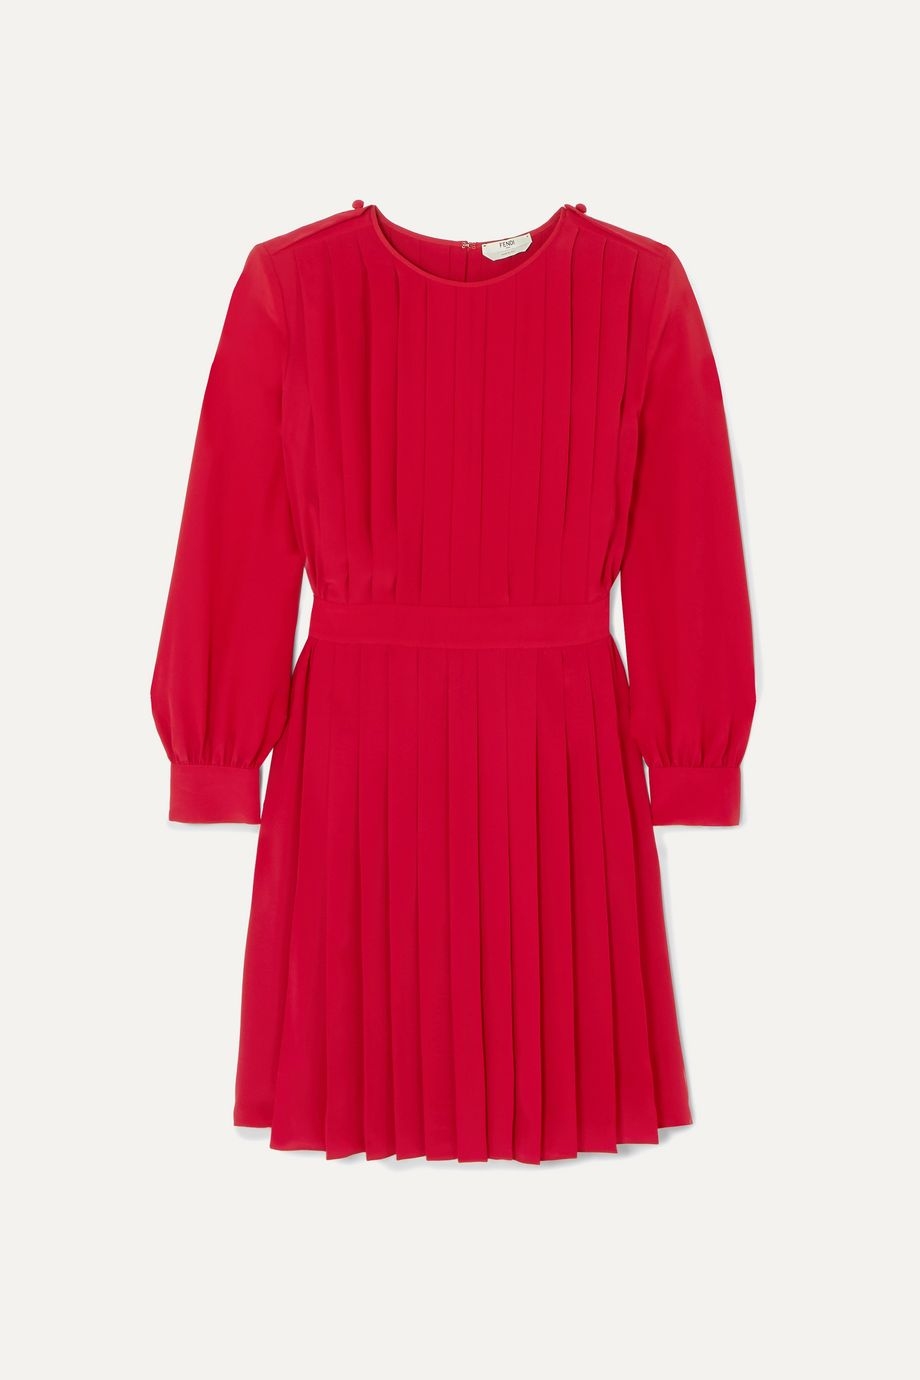 Fendi Pleated silk crepe de chine dress